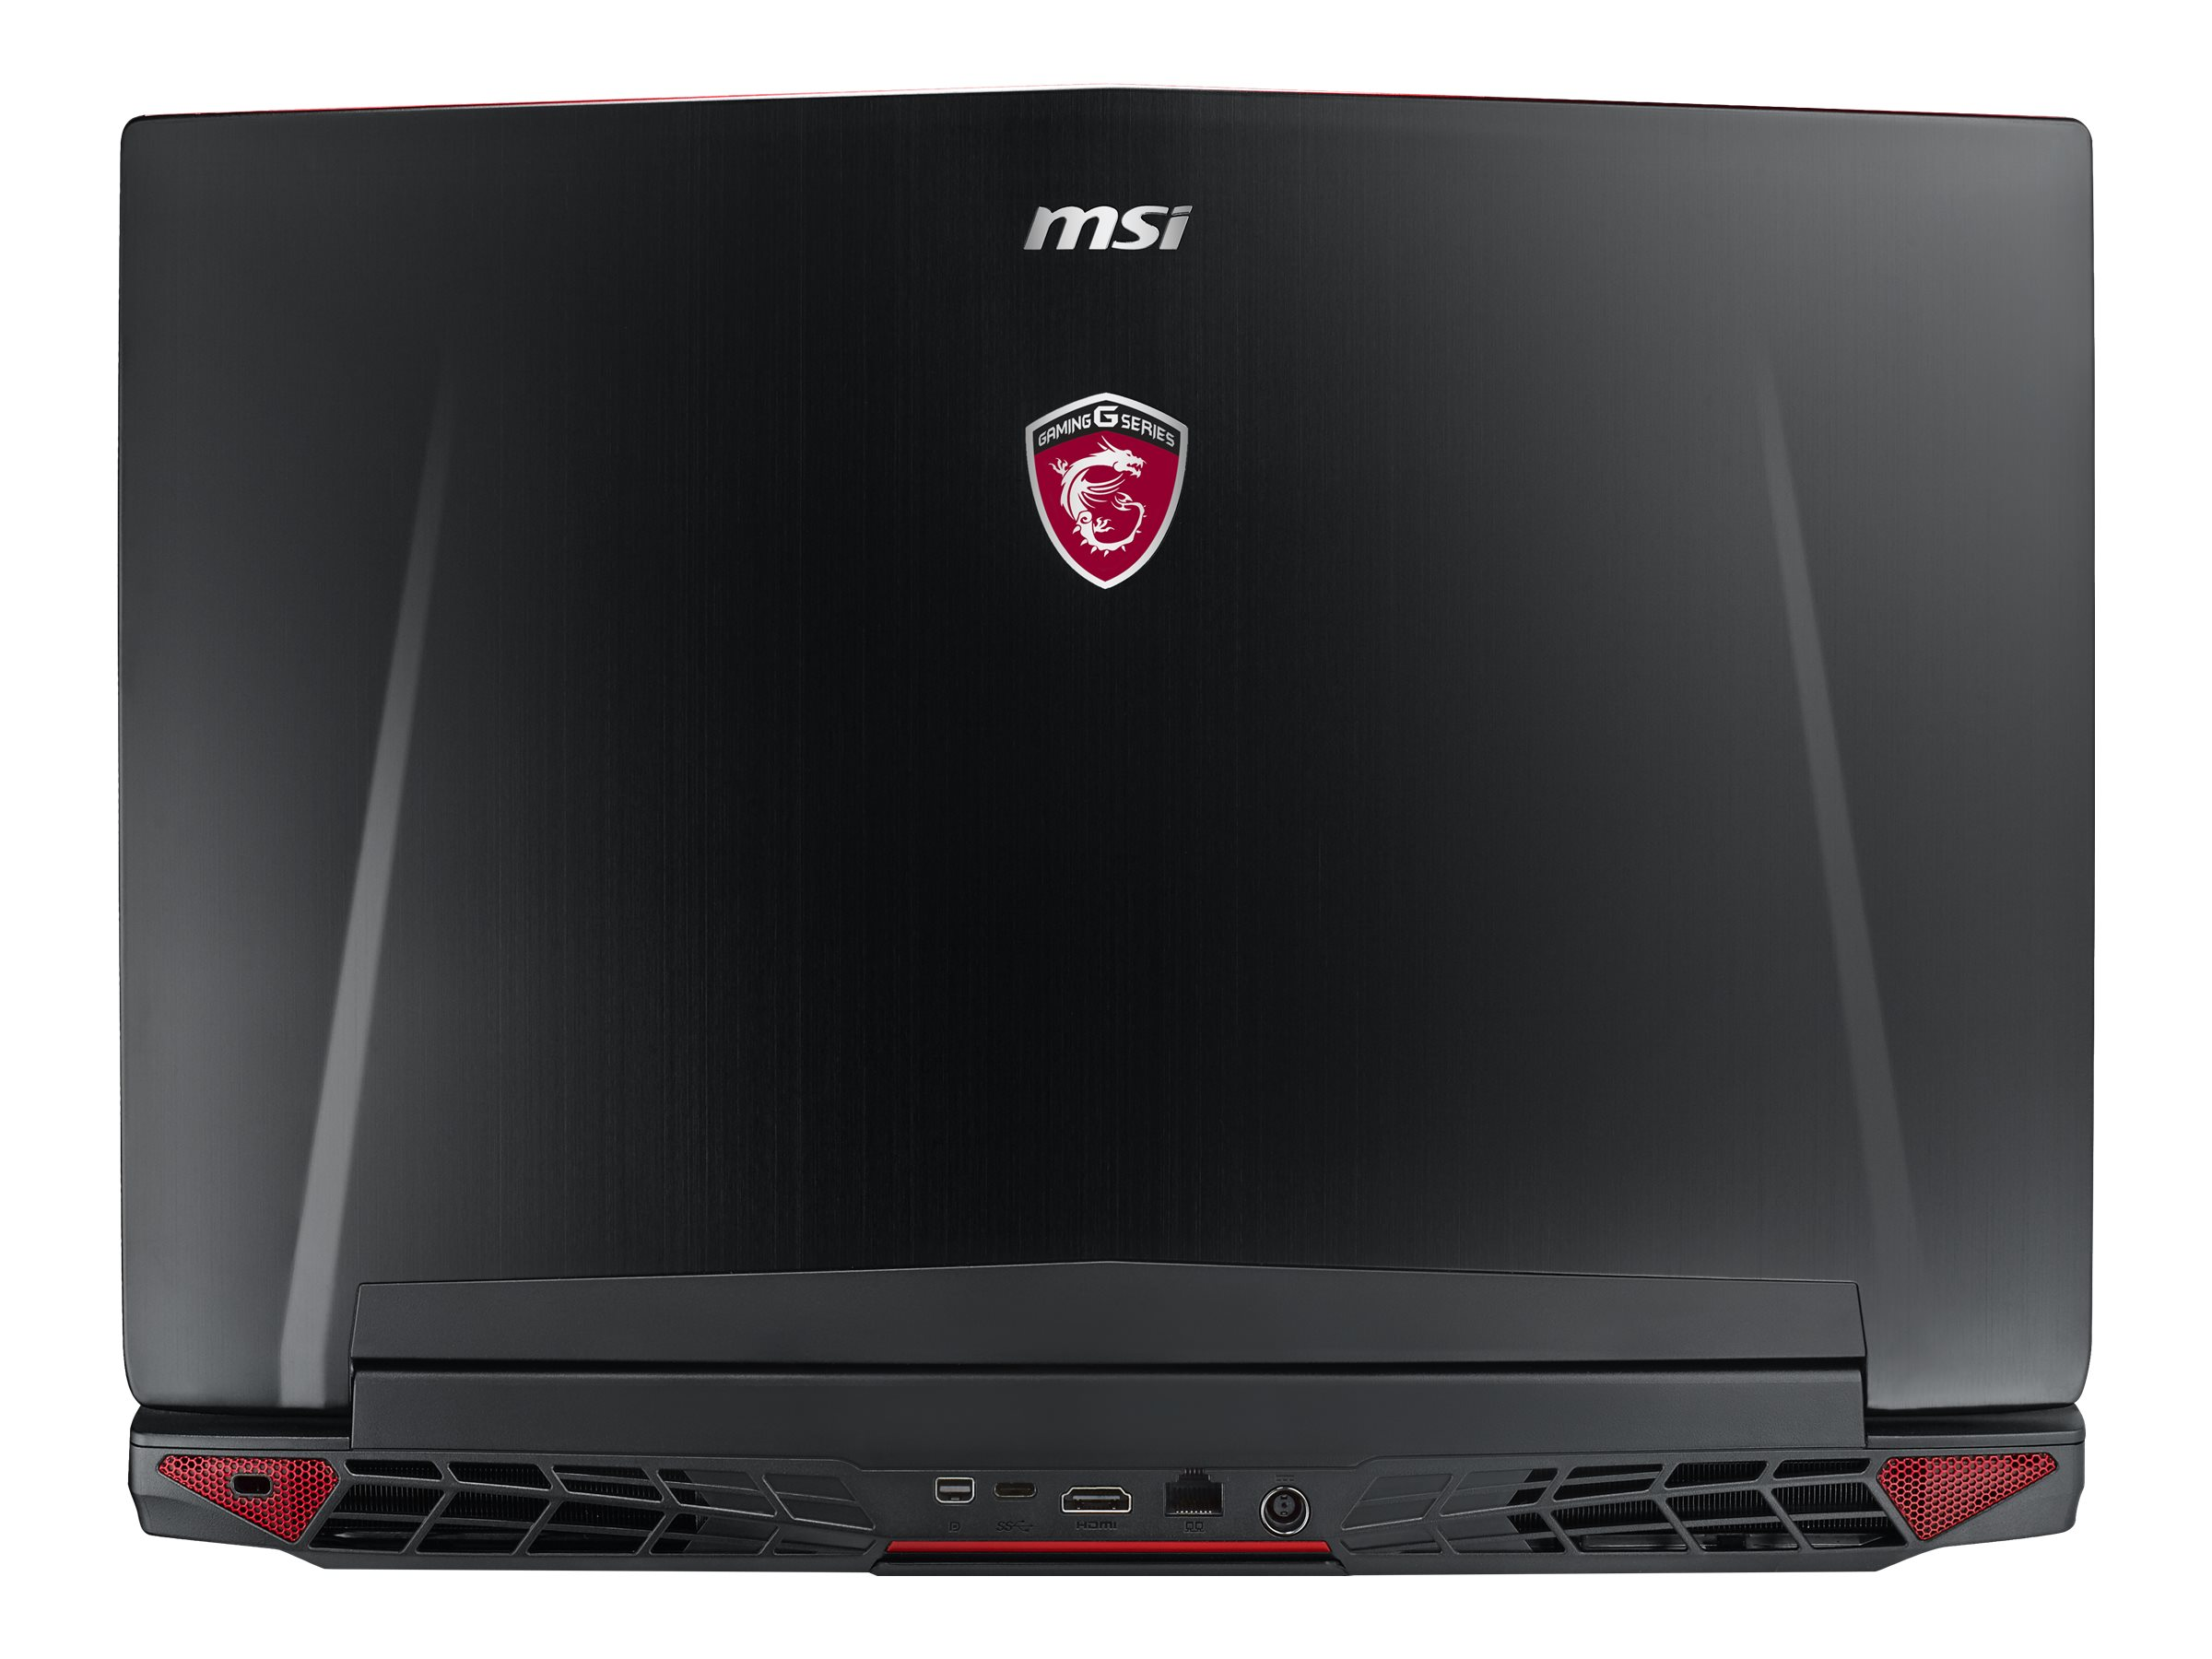 MSI Computer GT72VR257 Image 6